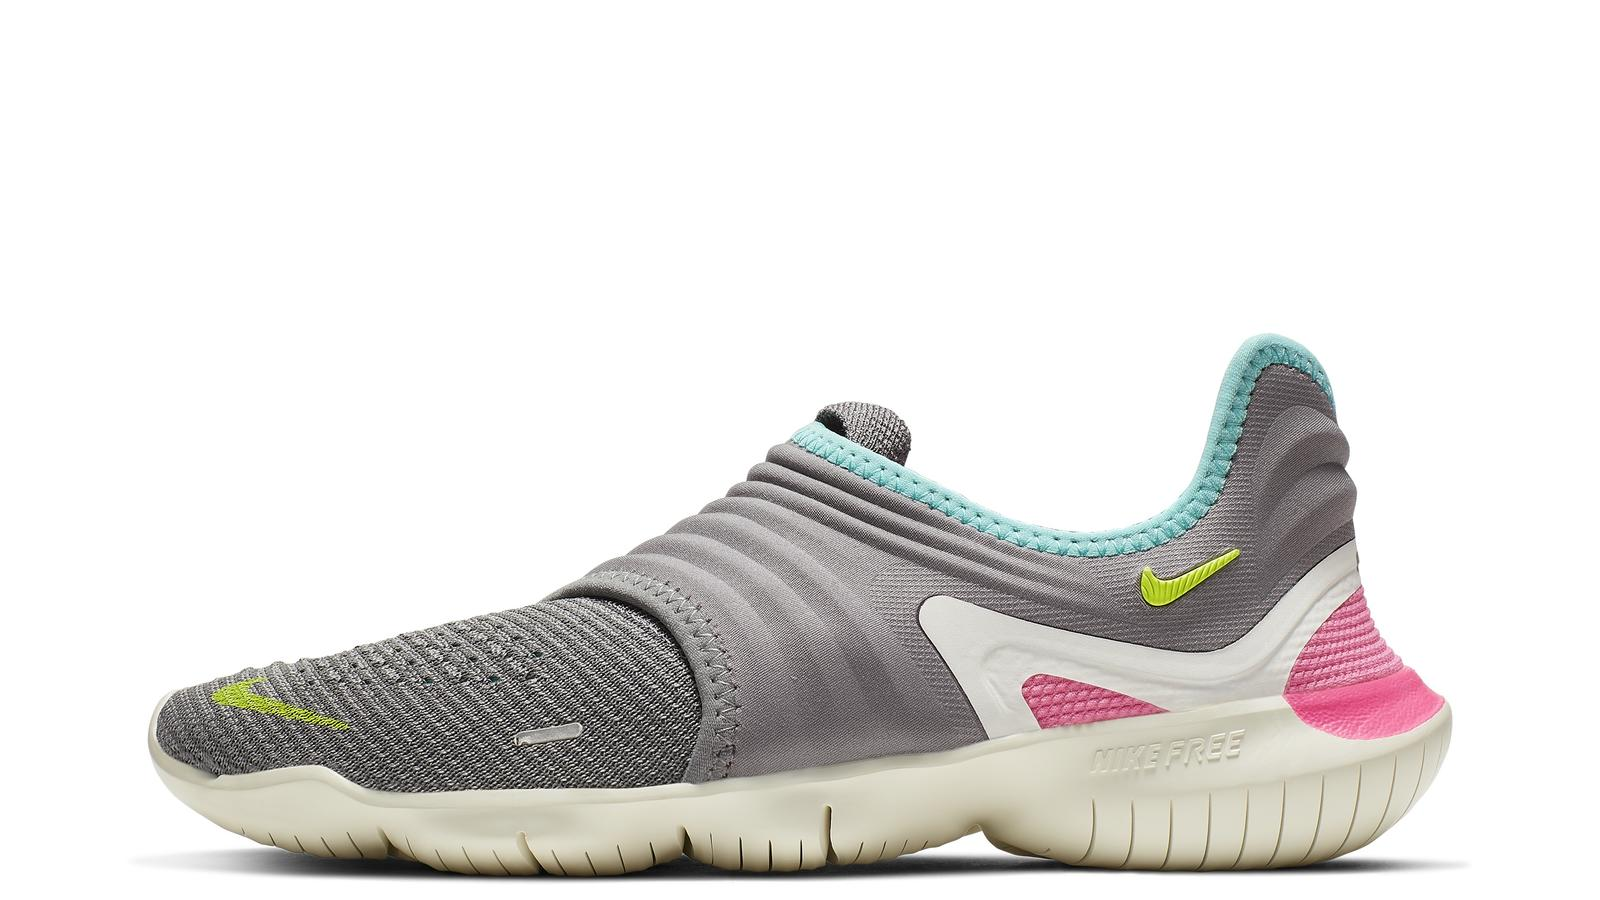 2019 Nike Free Running Collection - Nike News